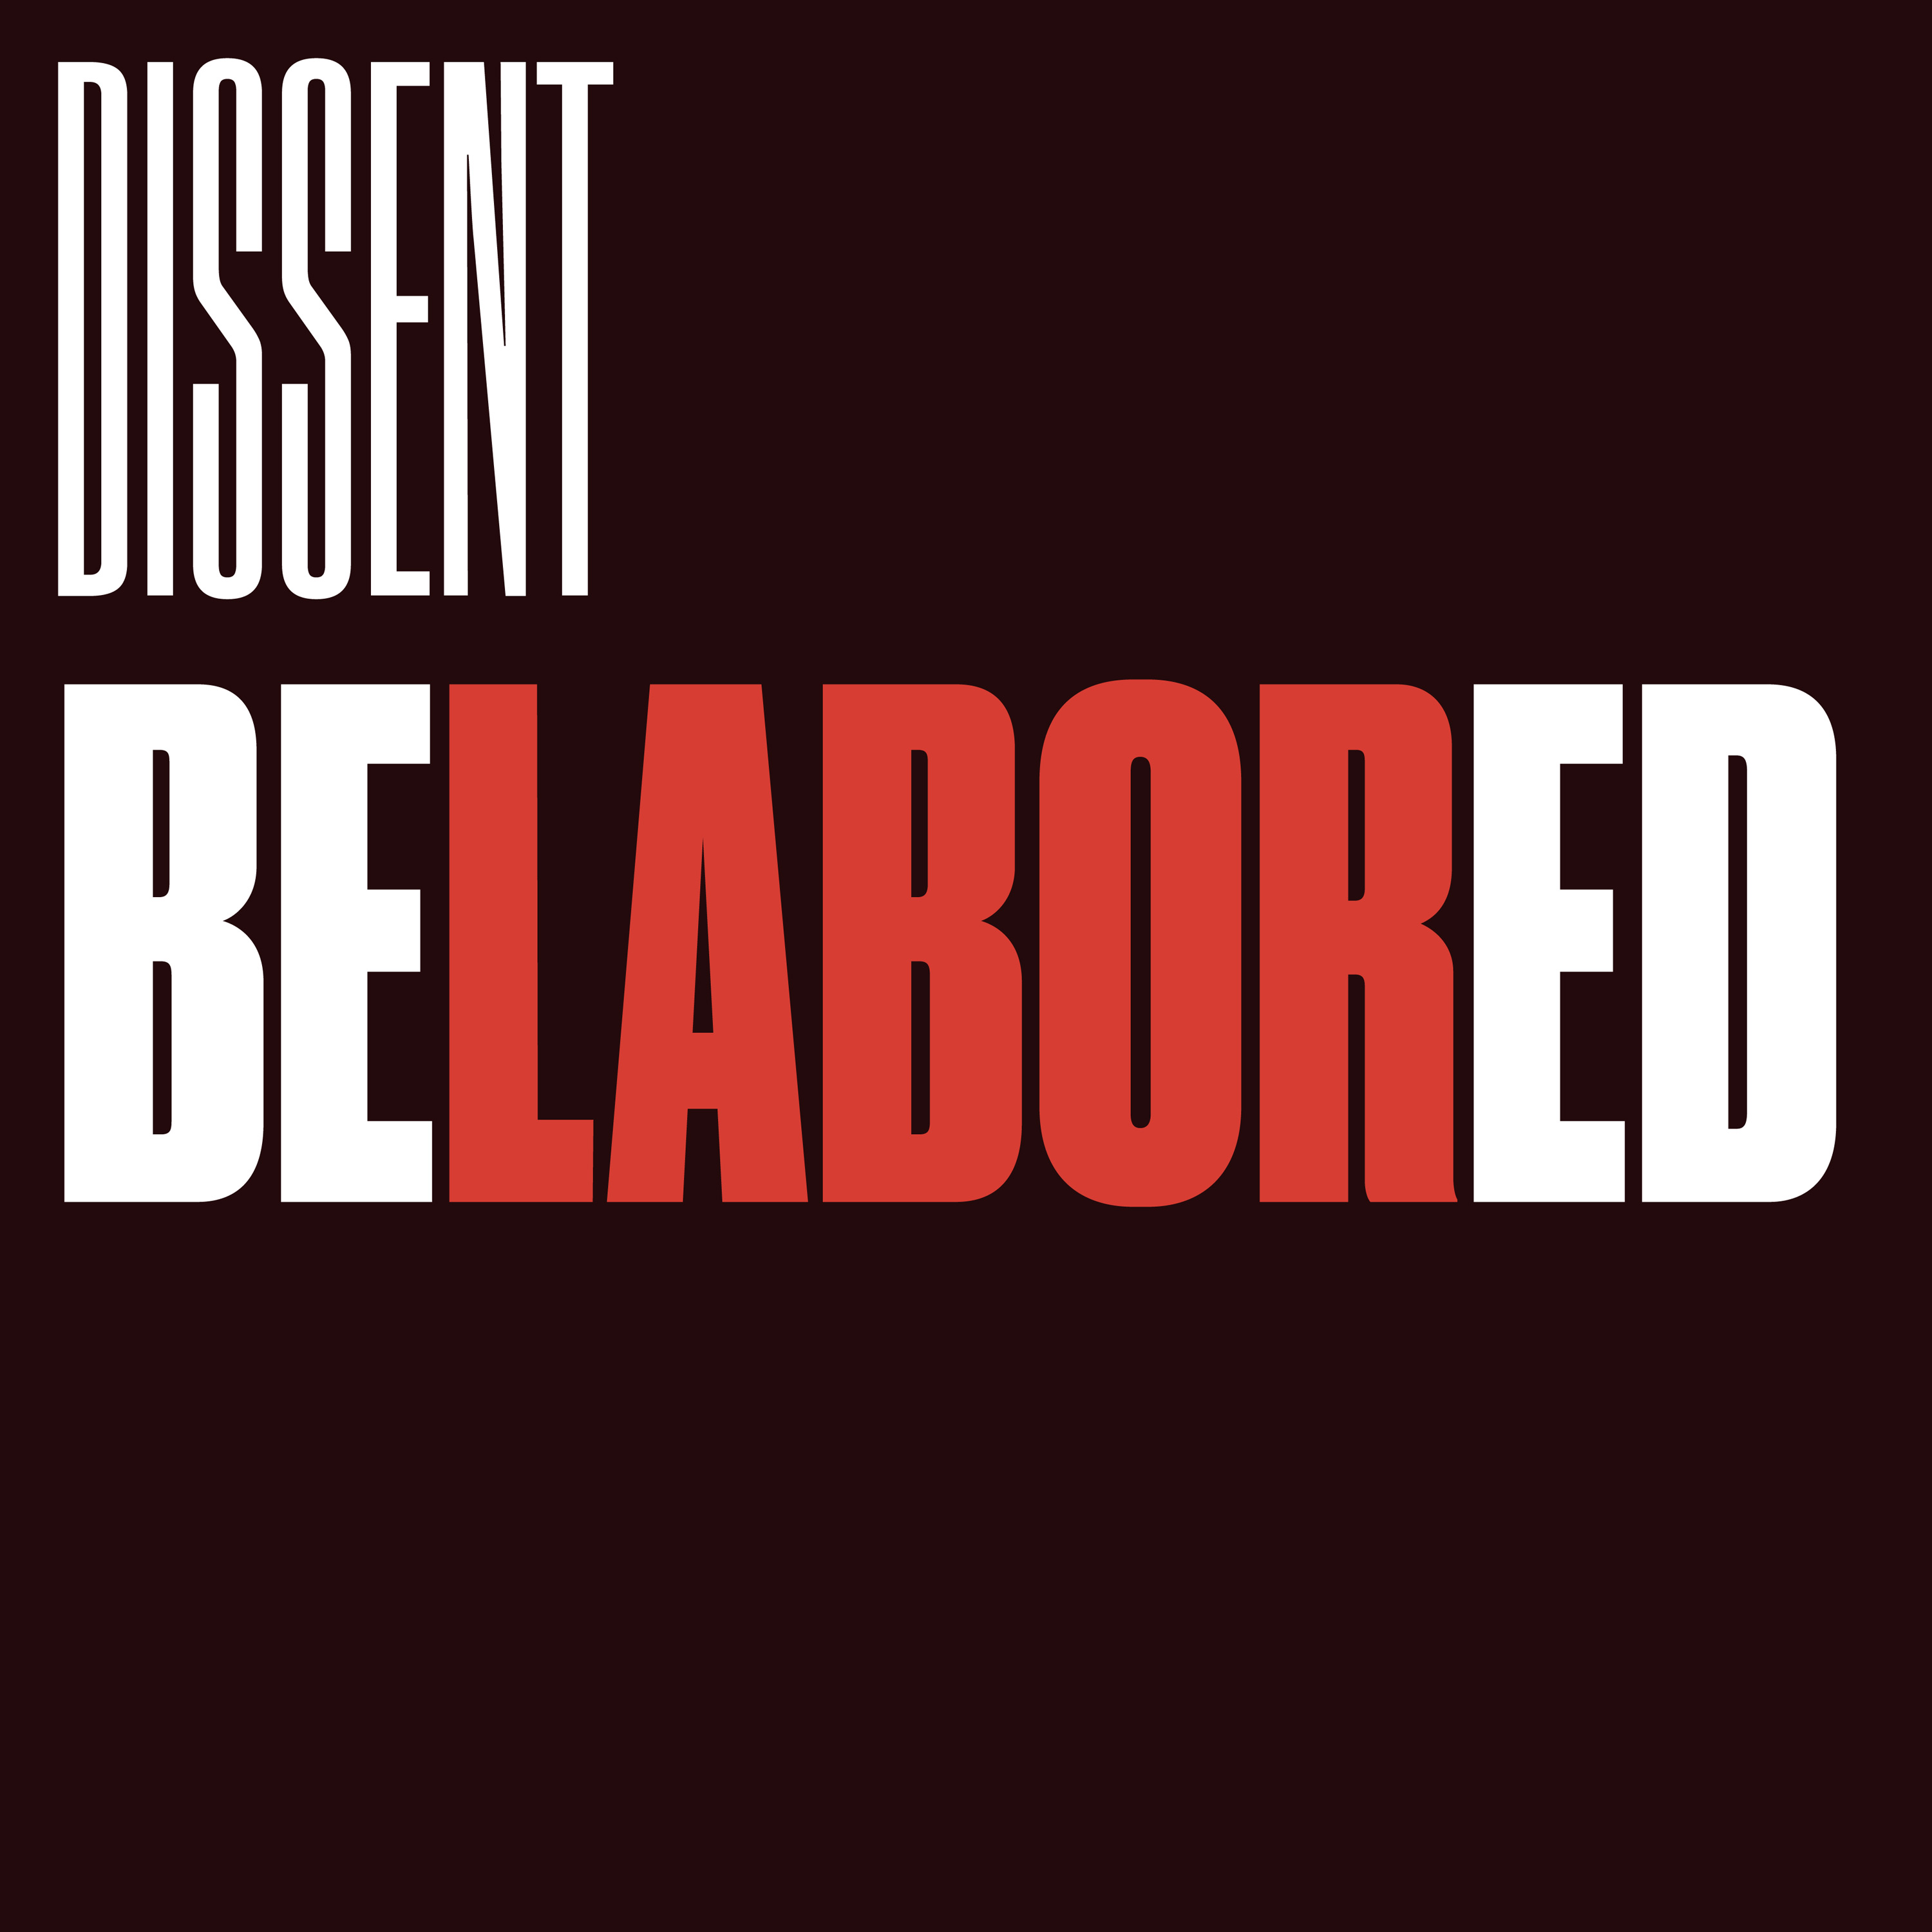 Belabored by Dissent Magazine